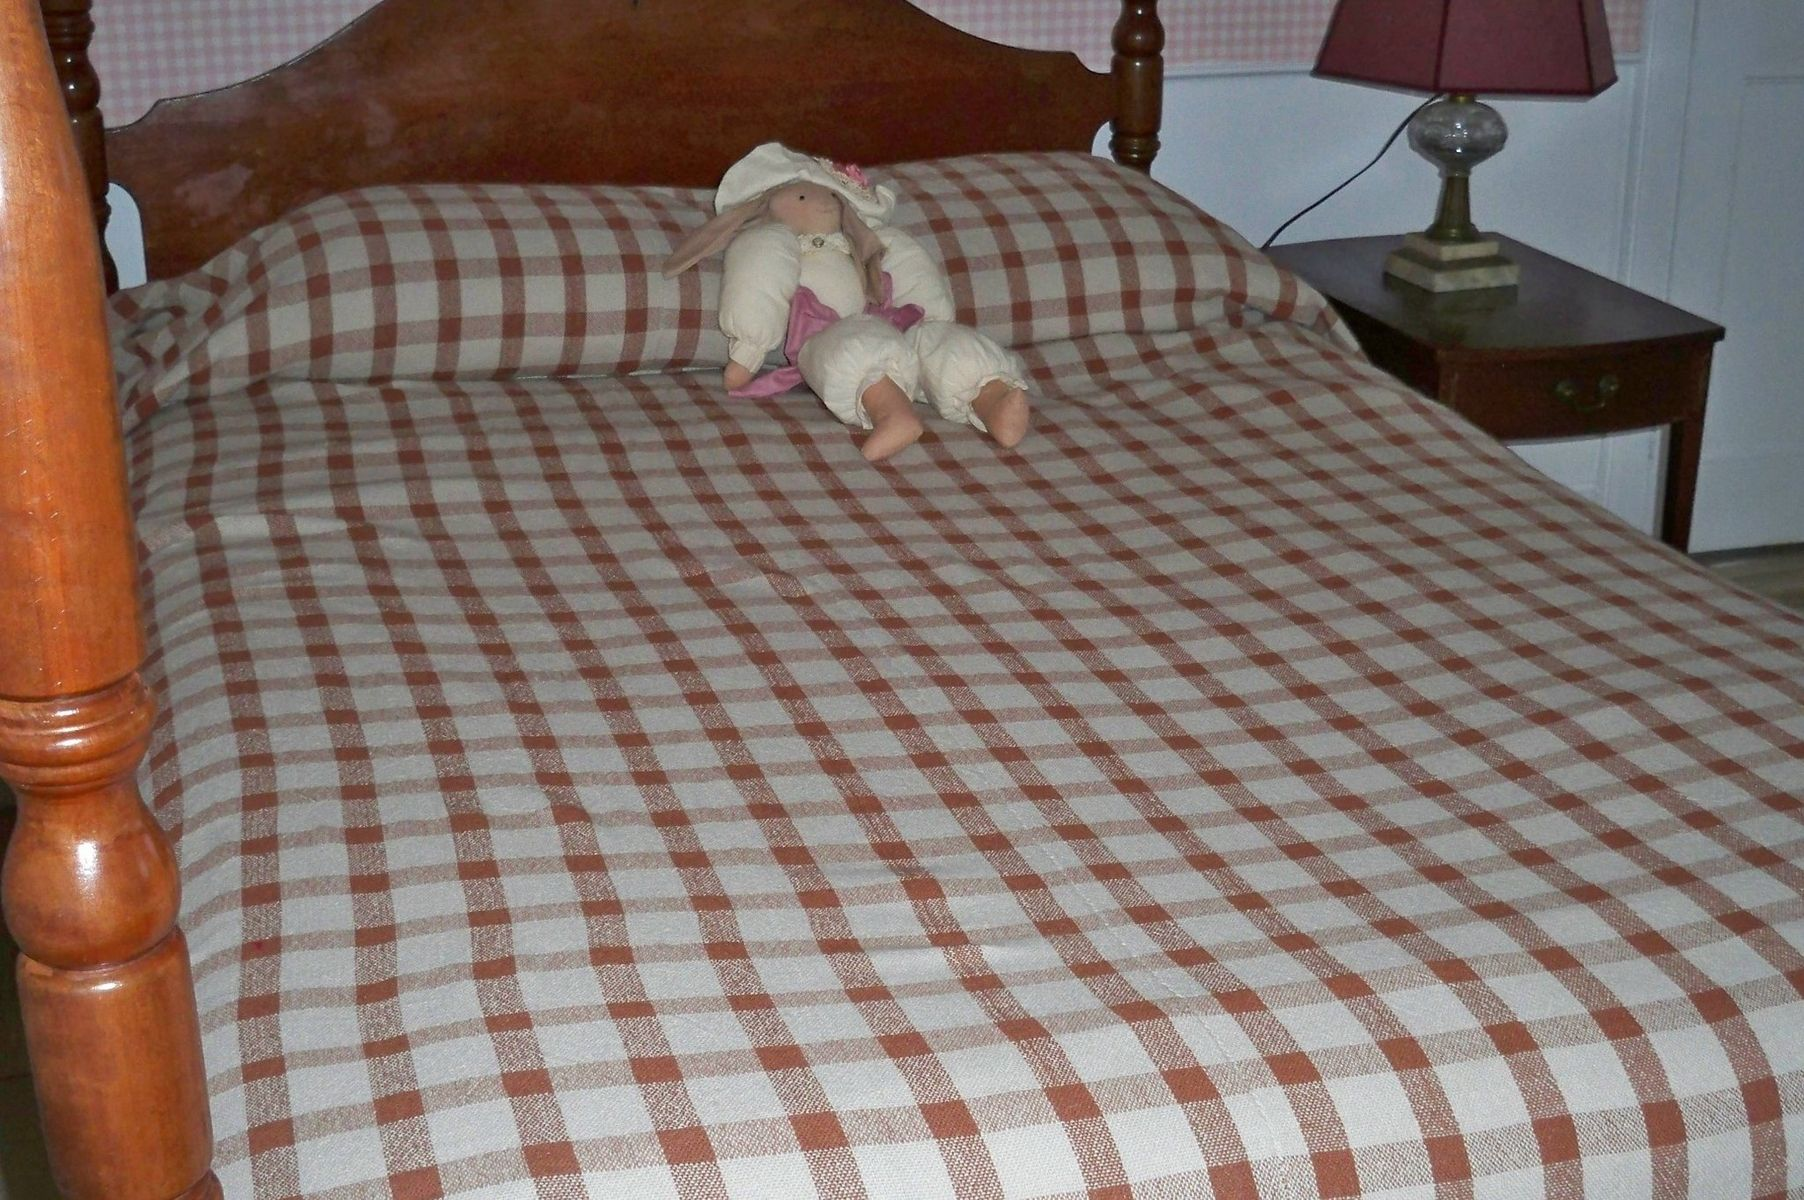 Custom Bedspread For Queen Size Bed In Cotton Hand Woven